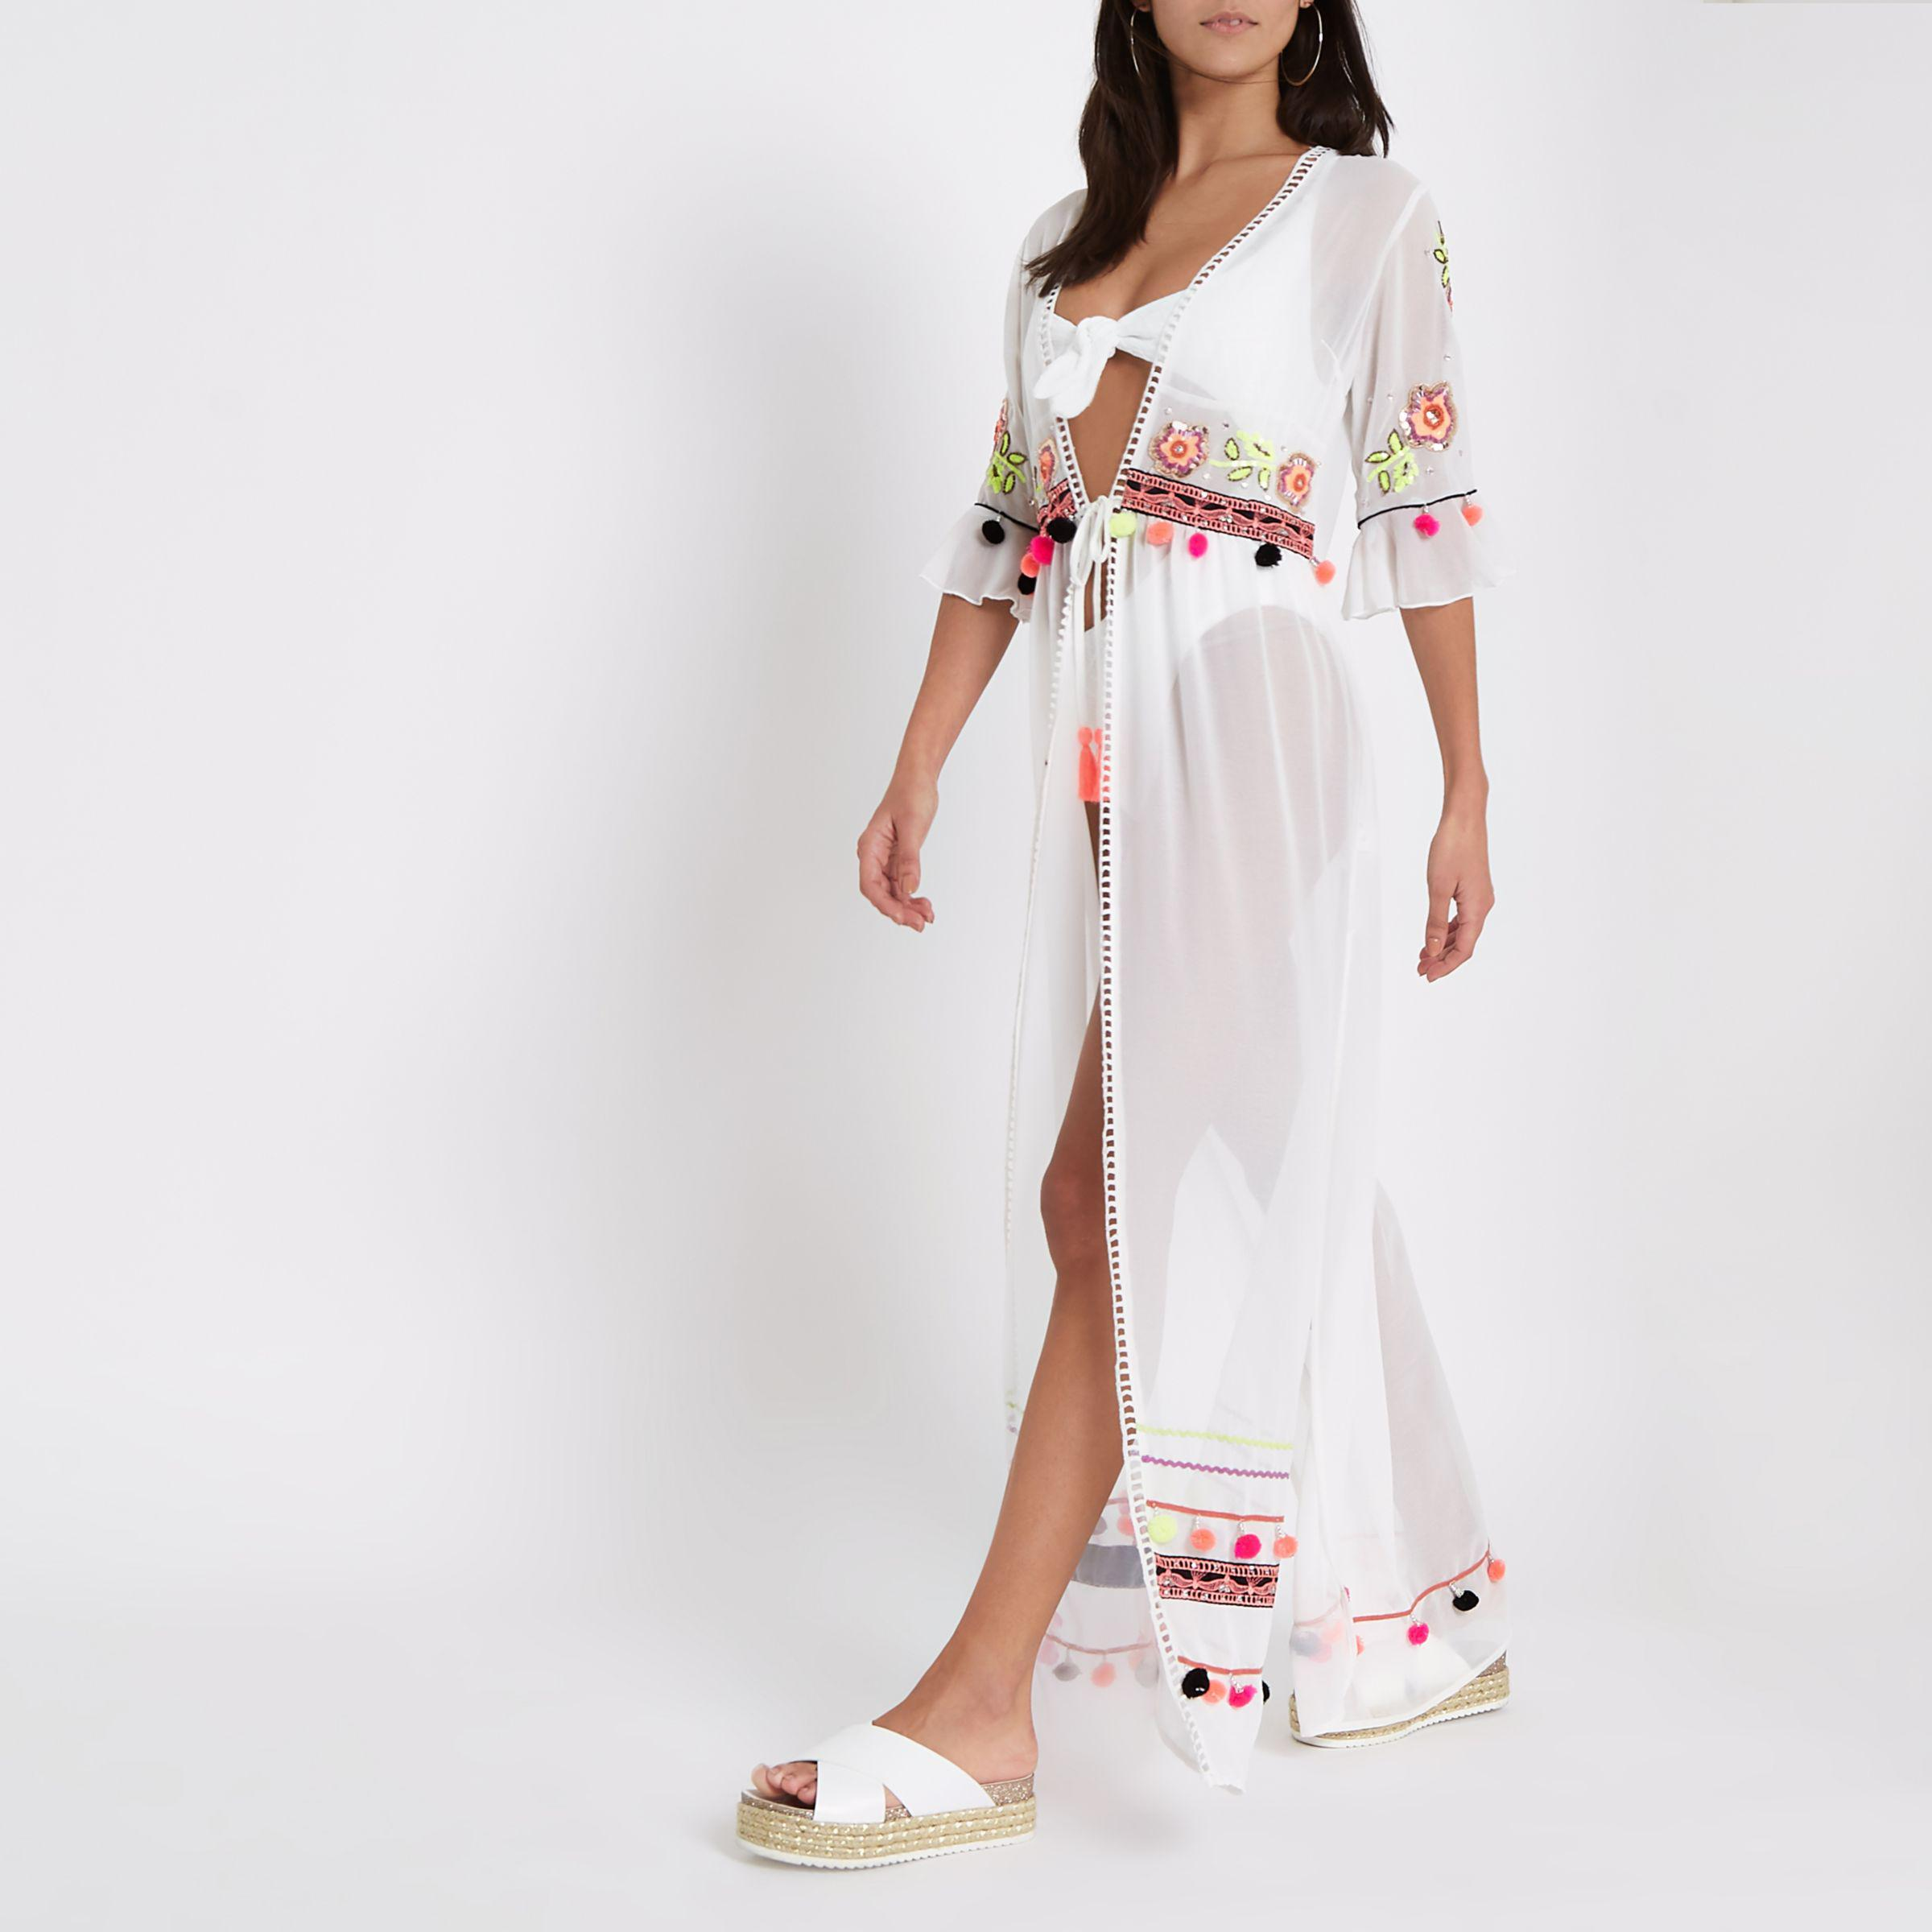 b6e372dc77 River Island White Embellished Maxi Beach Cover Up in White - Lyst